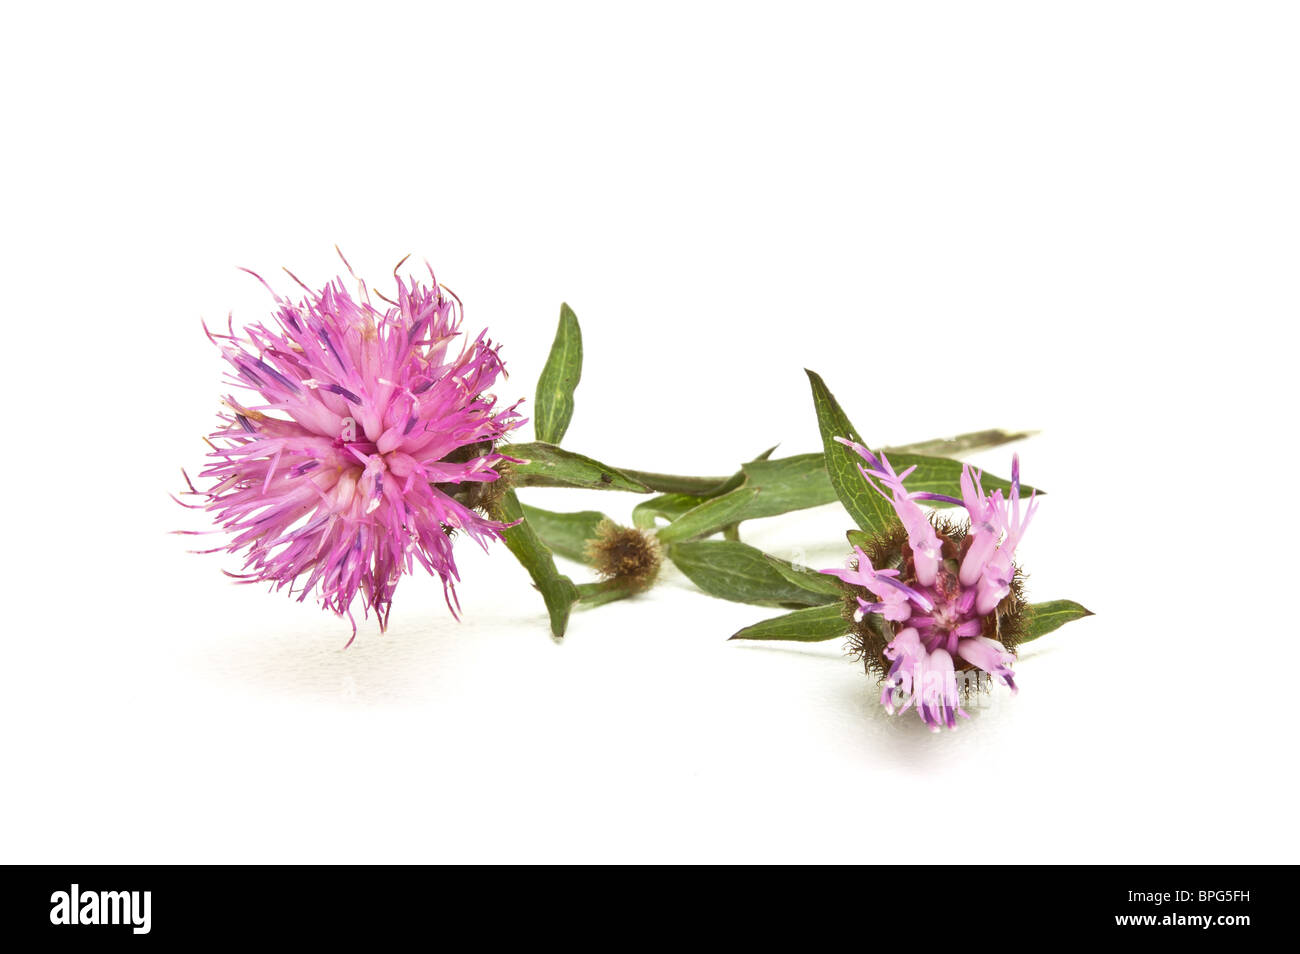 Wild Purple thistle like Flower from English hedgerow isolated on white. - Stock Image